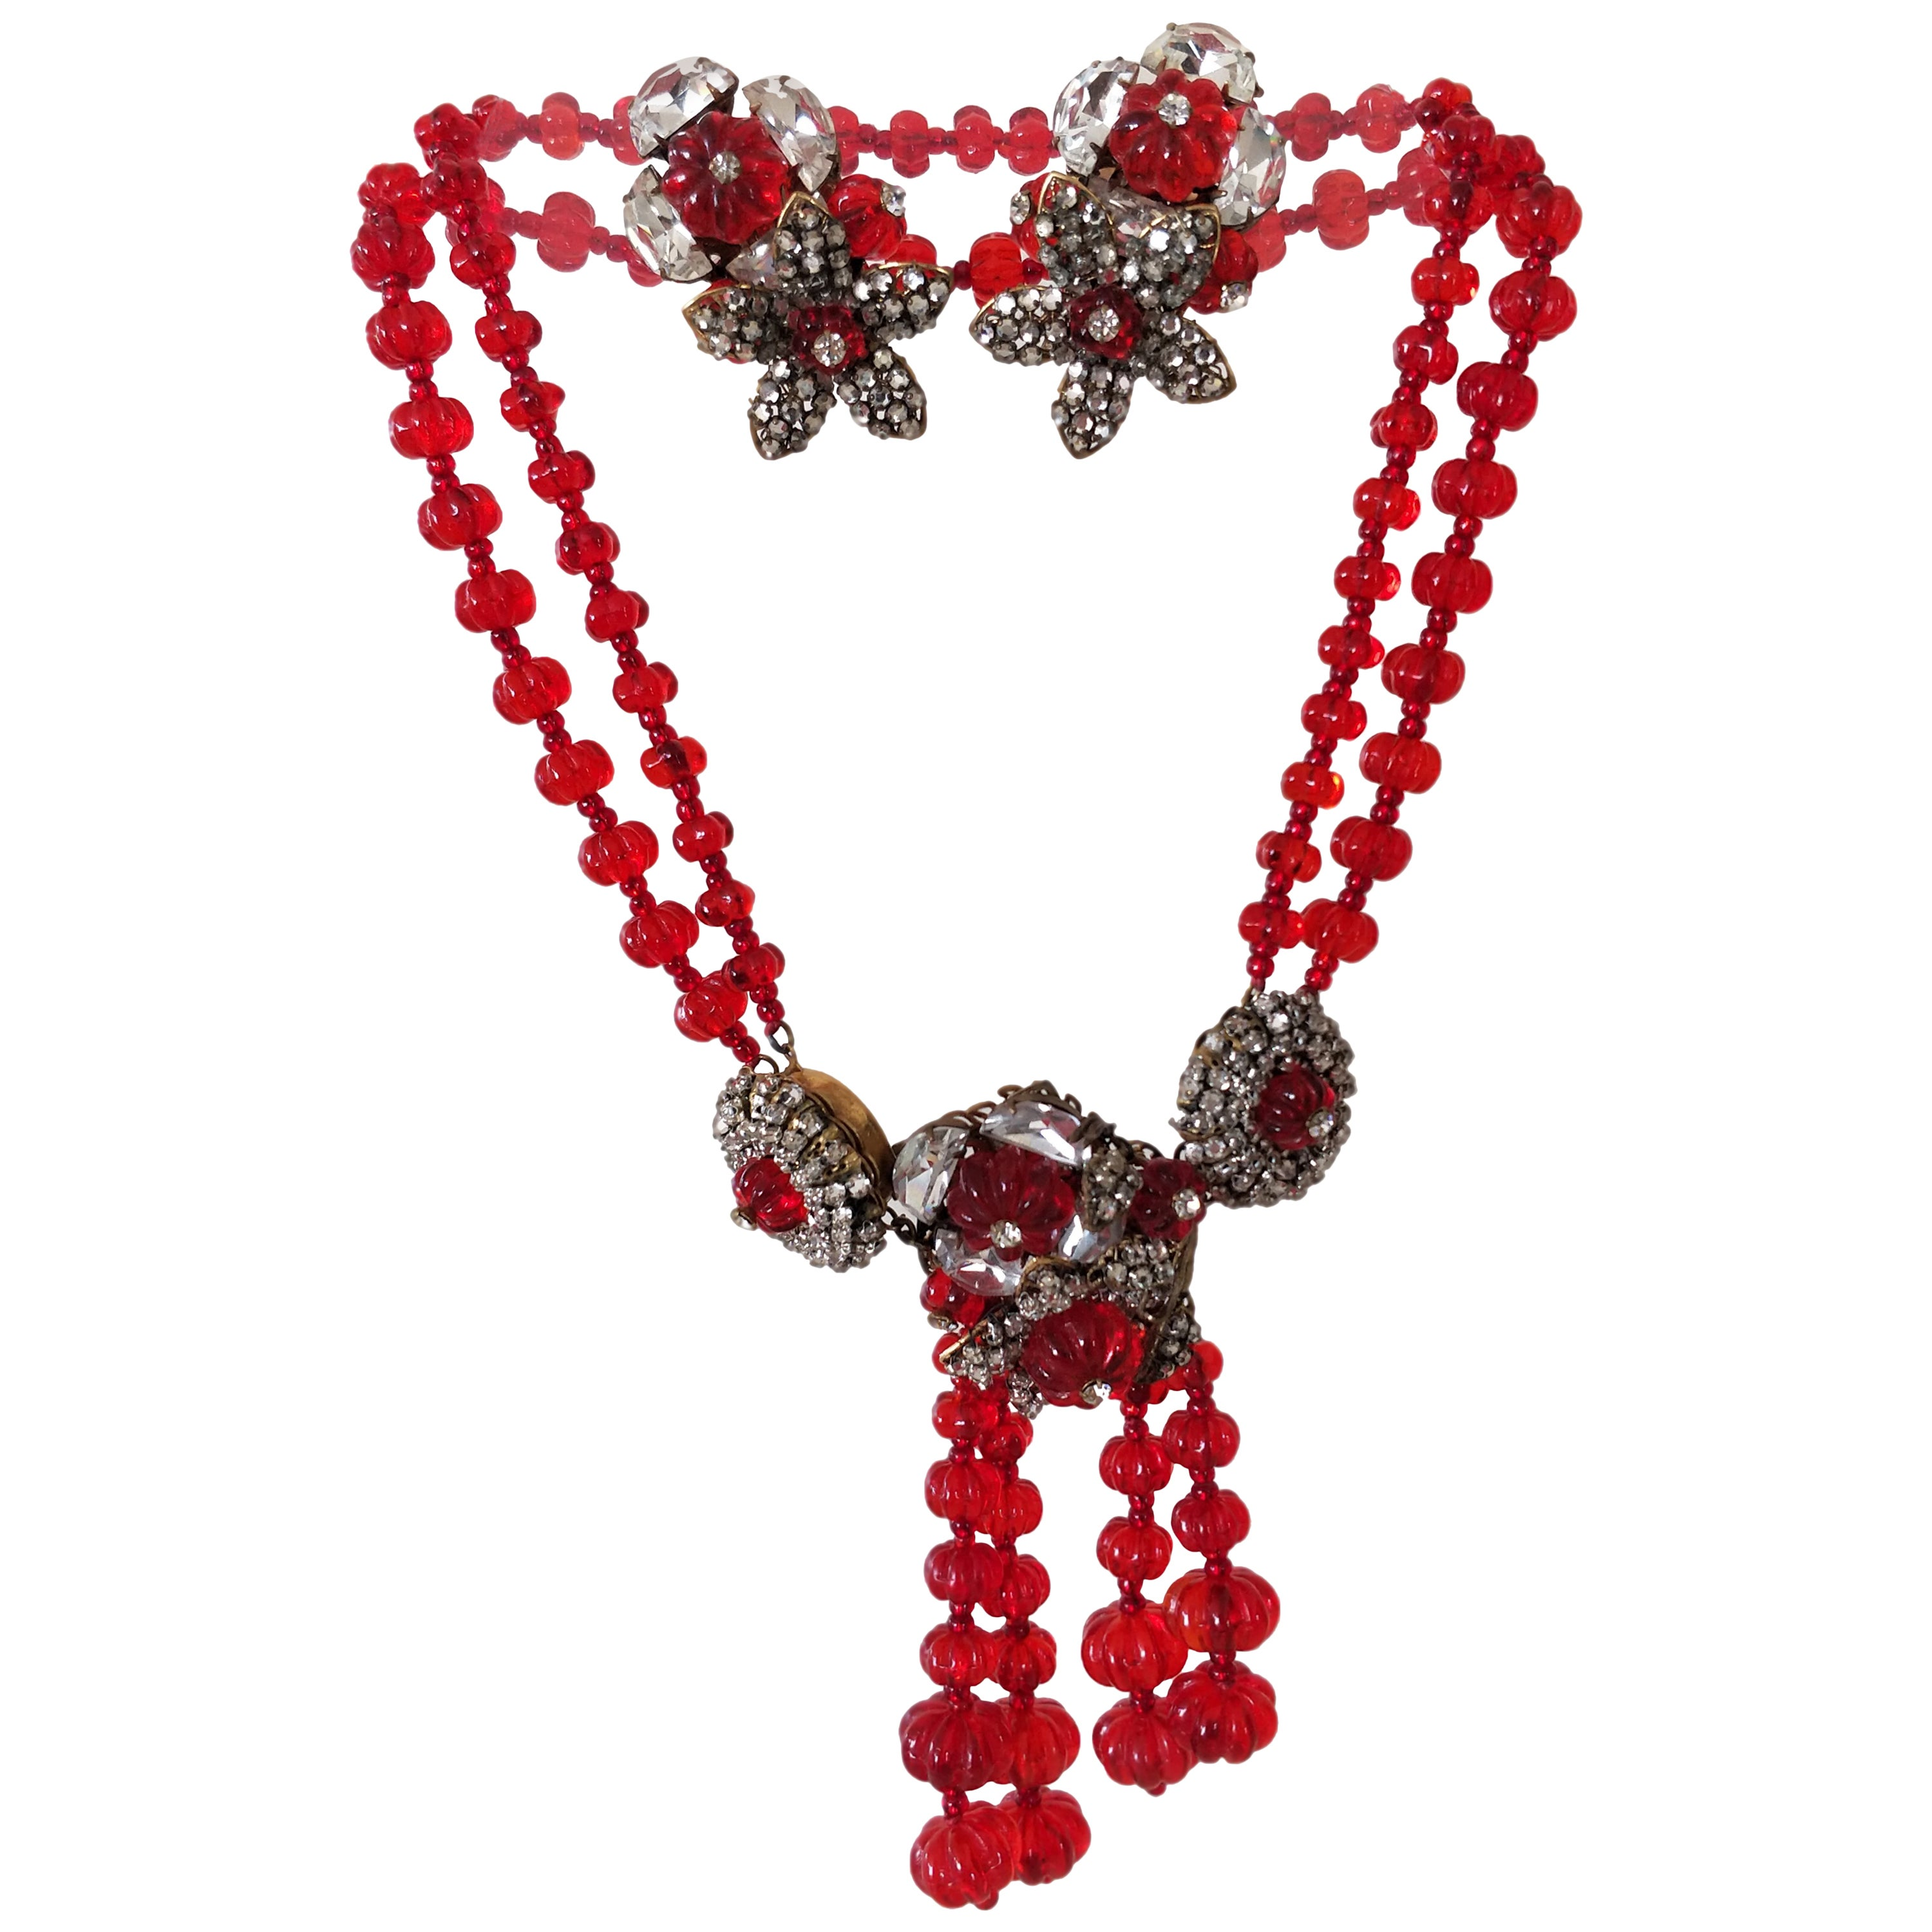 bb87688114dce 1940s Miriam Haskell Ruby Red Glass Bead, Rhinestone Necklace and Earring  Set